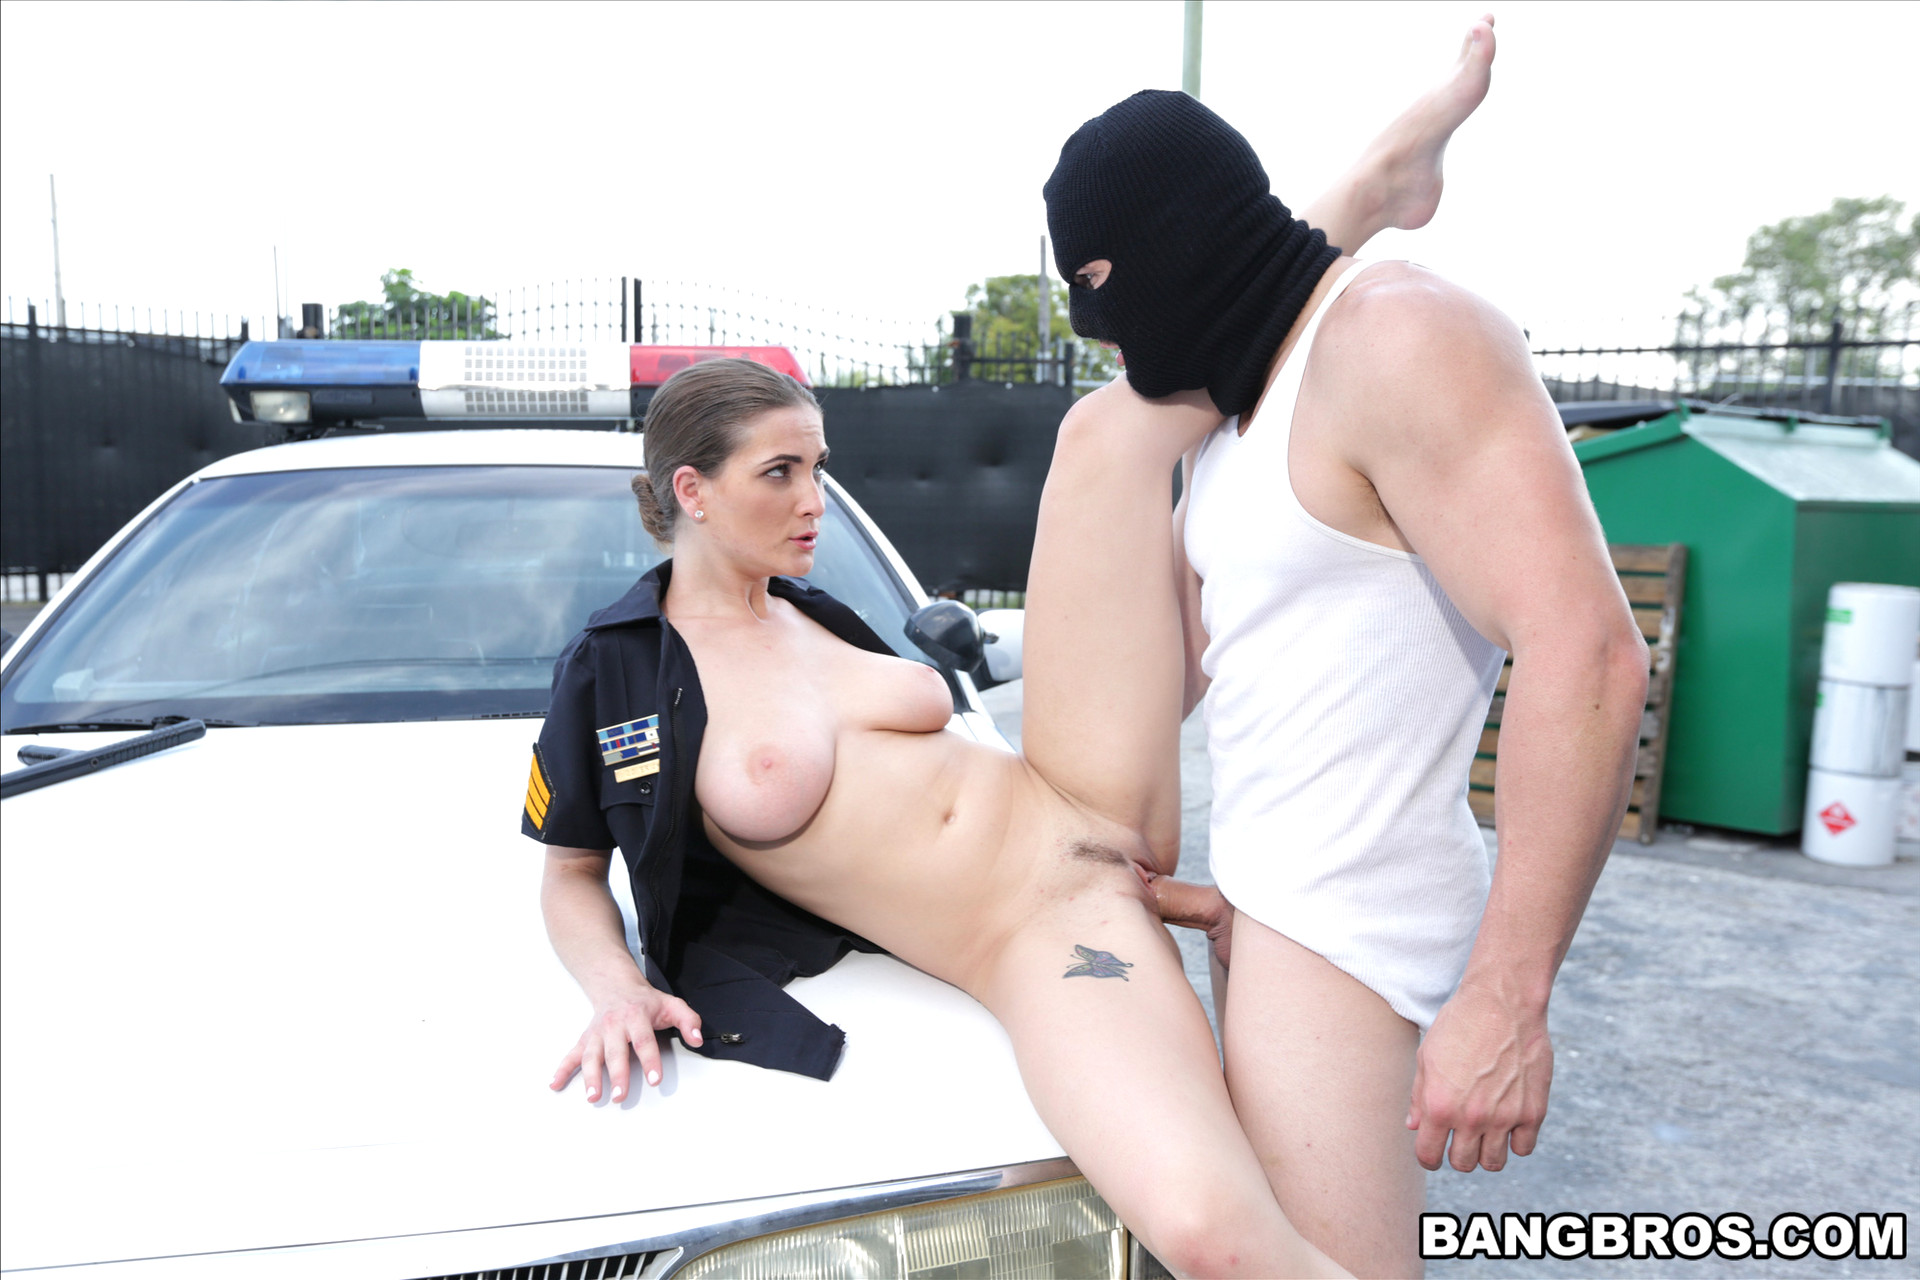 Free Naked Male Cop Porn Pics And Gay Police Men Fucking The White